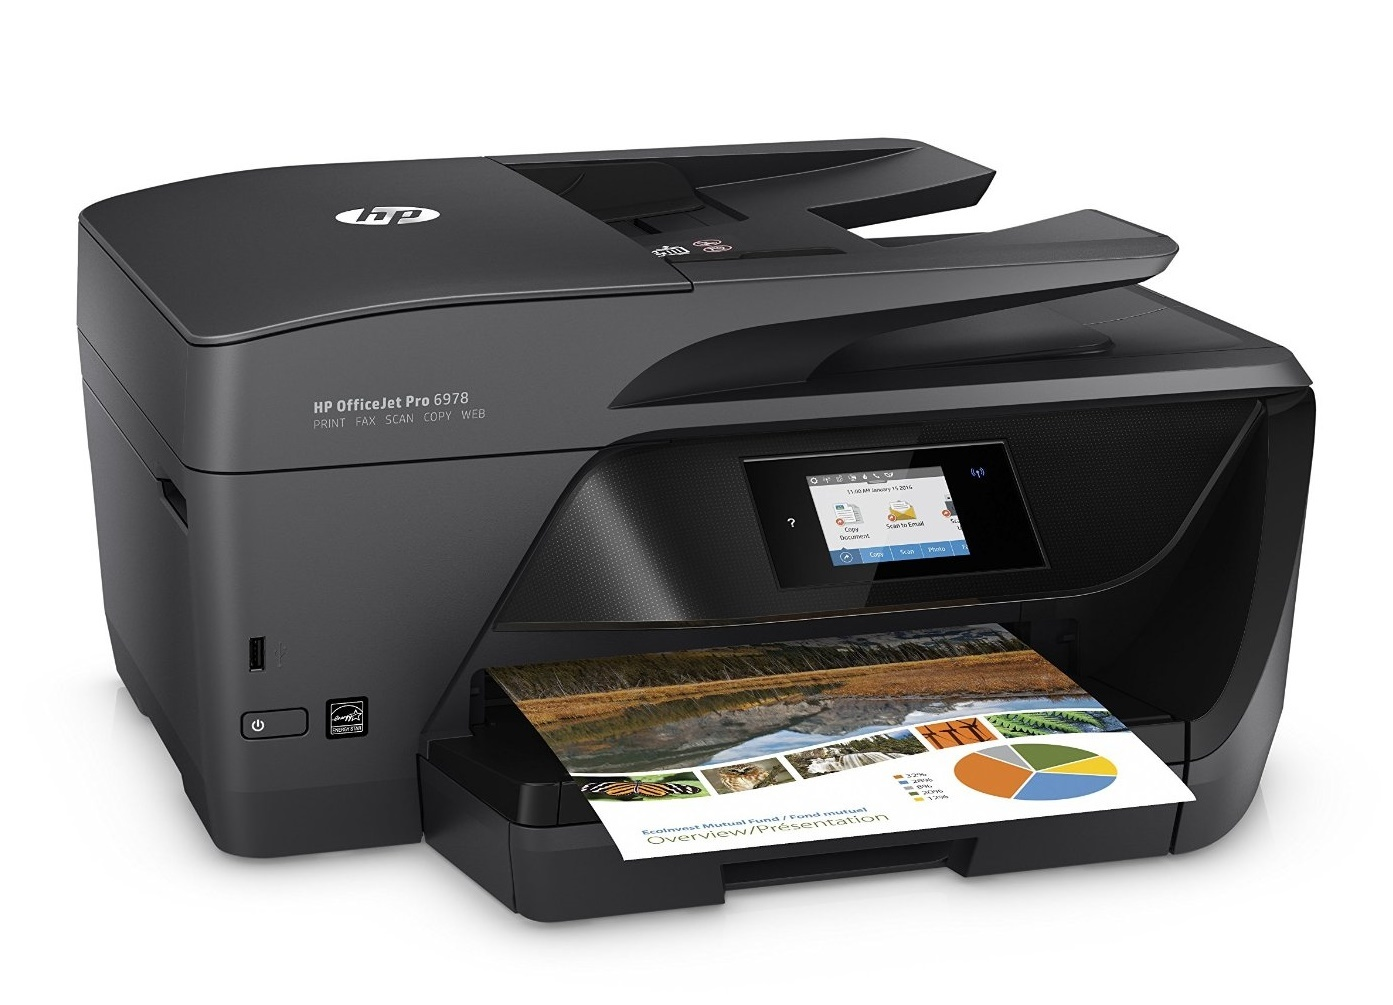 buy hp officejet pro 6960 all in one printer at mighty ape nz. Black Bedroom Furniture Sets. Home Design Ideas